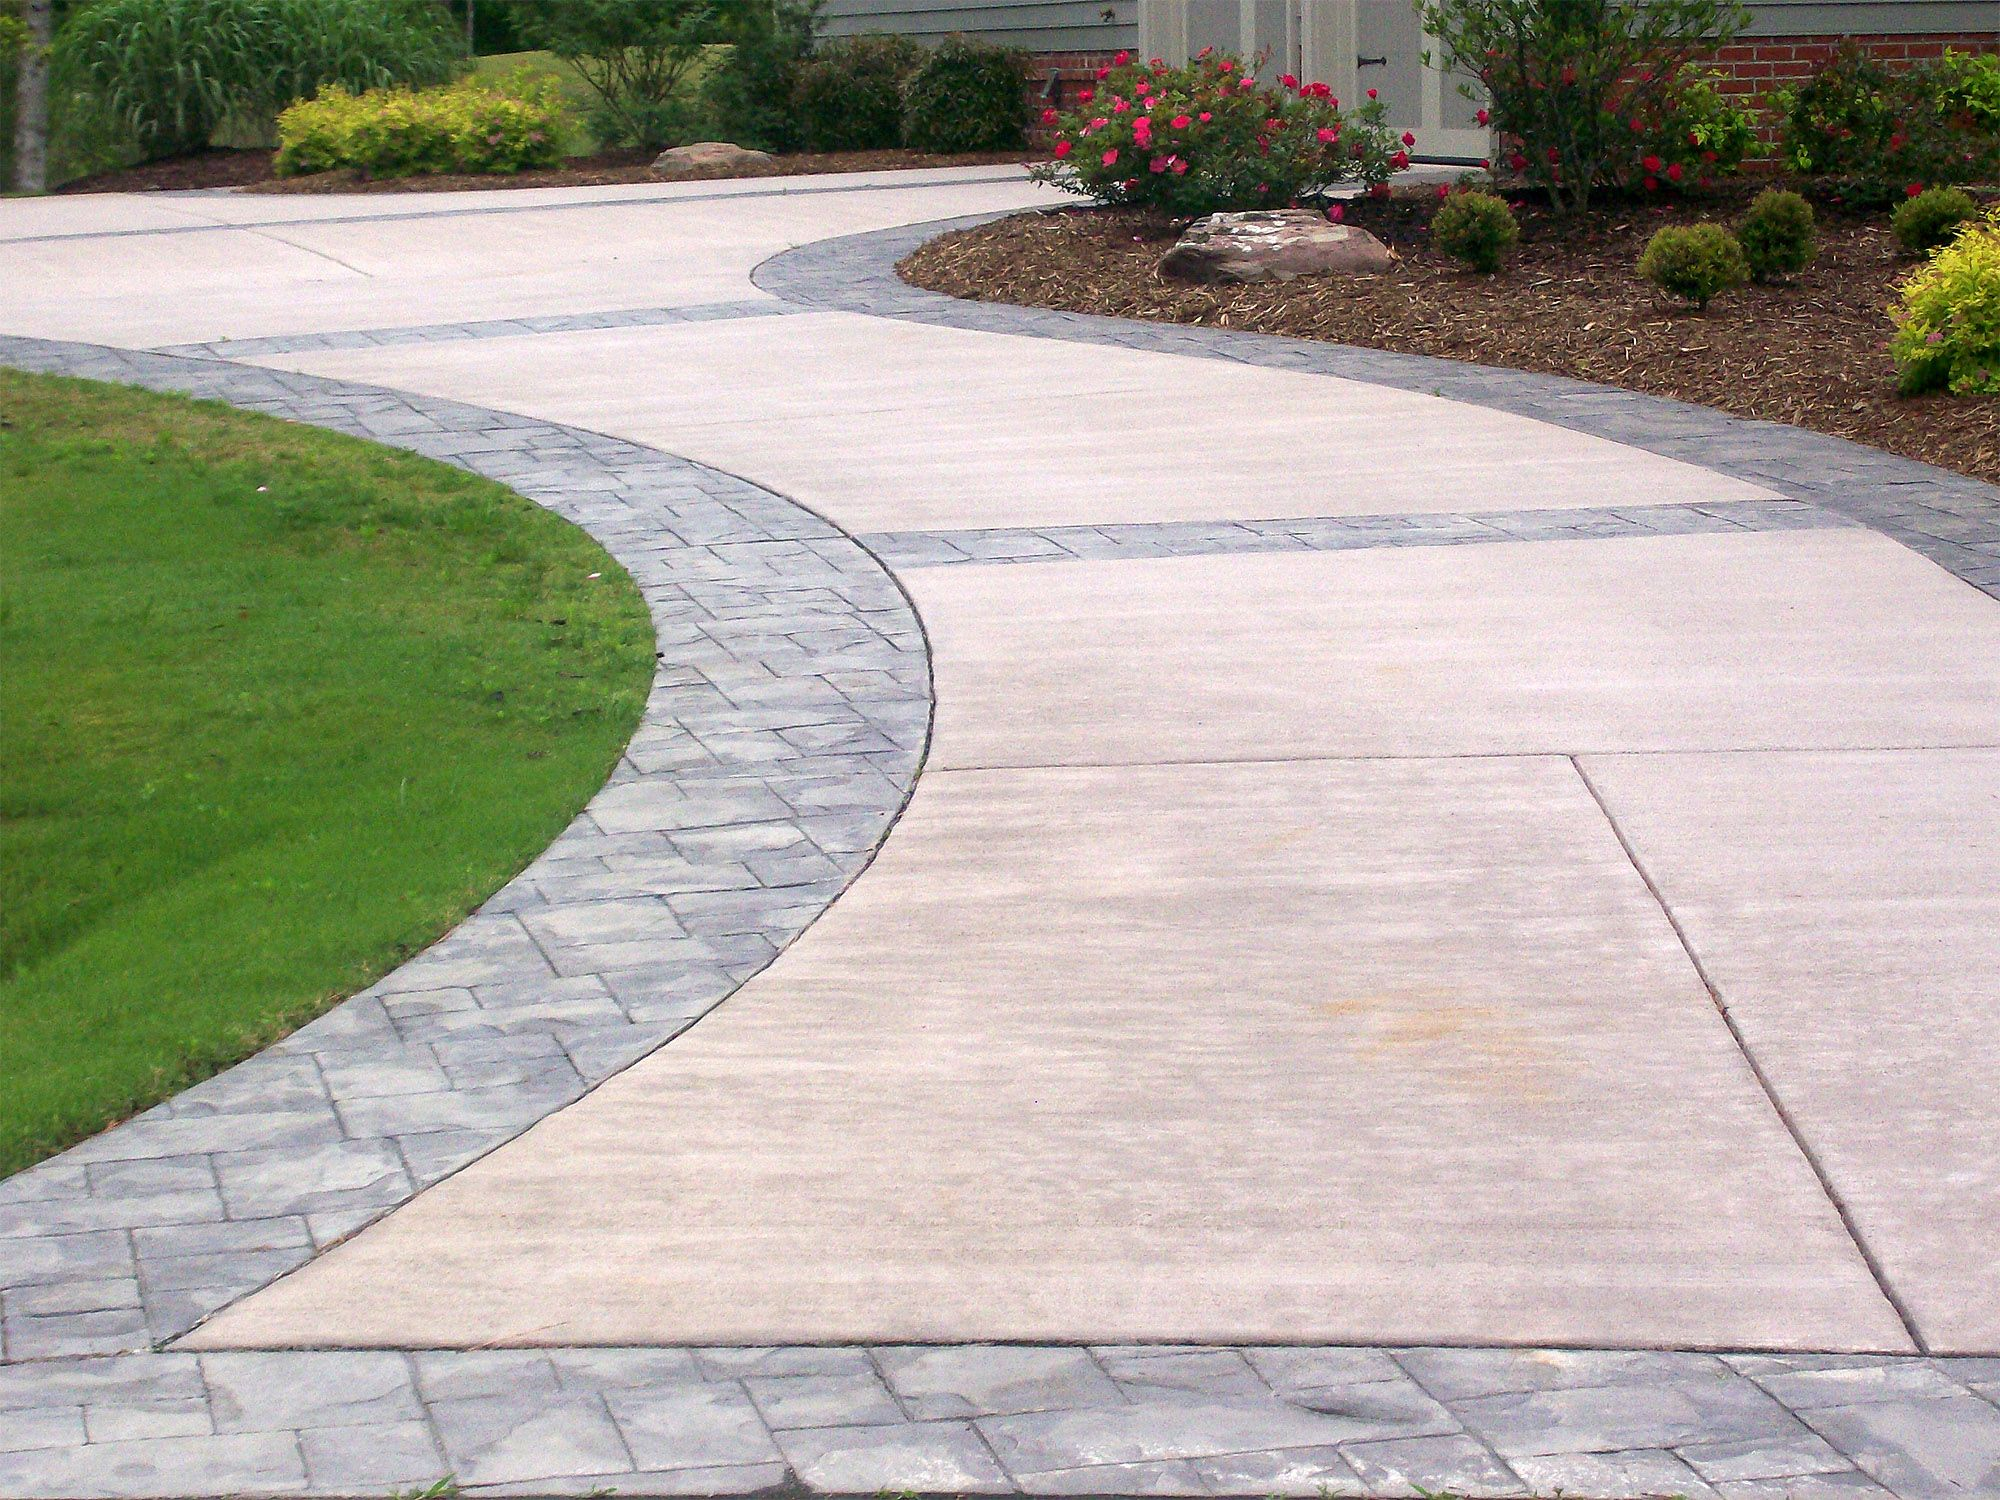 Brand New Refinished Concrete Driveway With Decorative